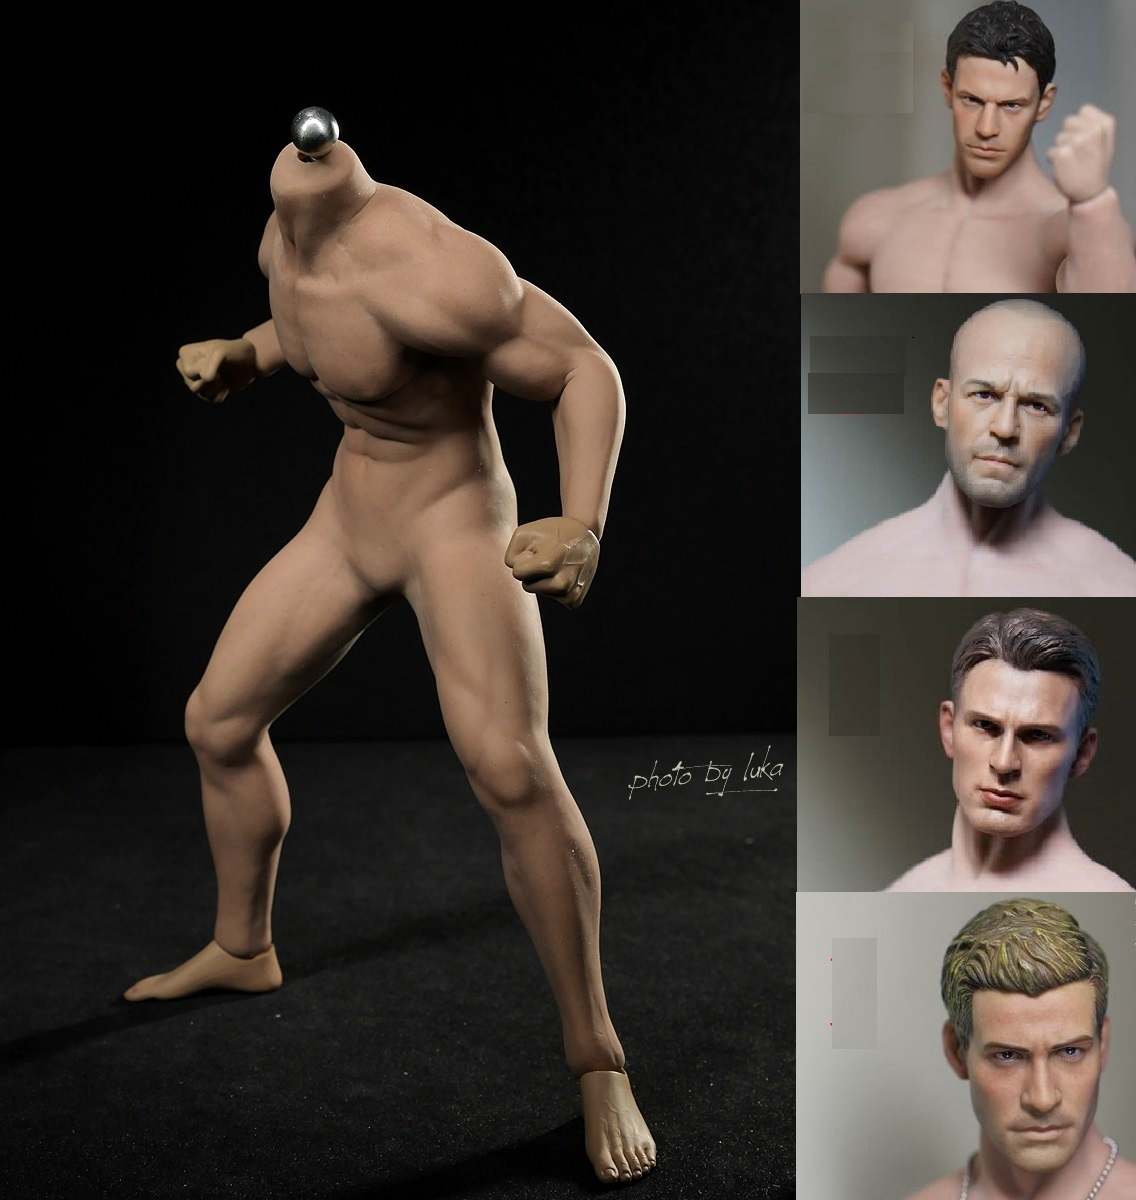 PHICEN PL2015-M30 1/6 Muscle Super Flexible Seamless Steel Male sketch Body for 12 HT DAM Collectible 1 6 scale male action figure model toys super flexible seamless muscle body pl2016 m33 for collections